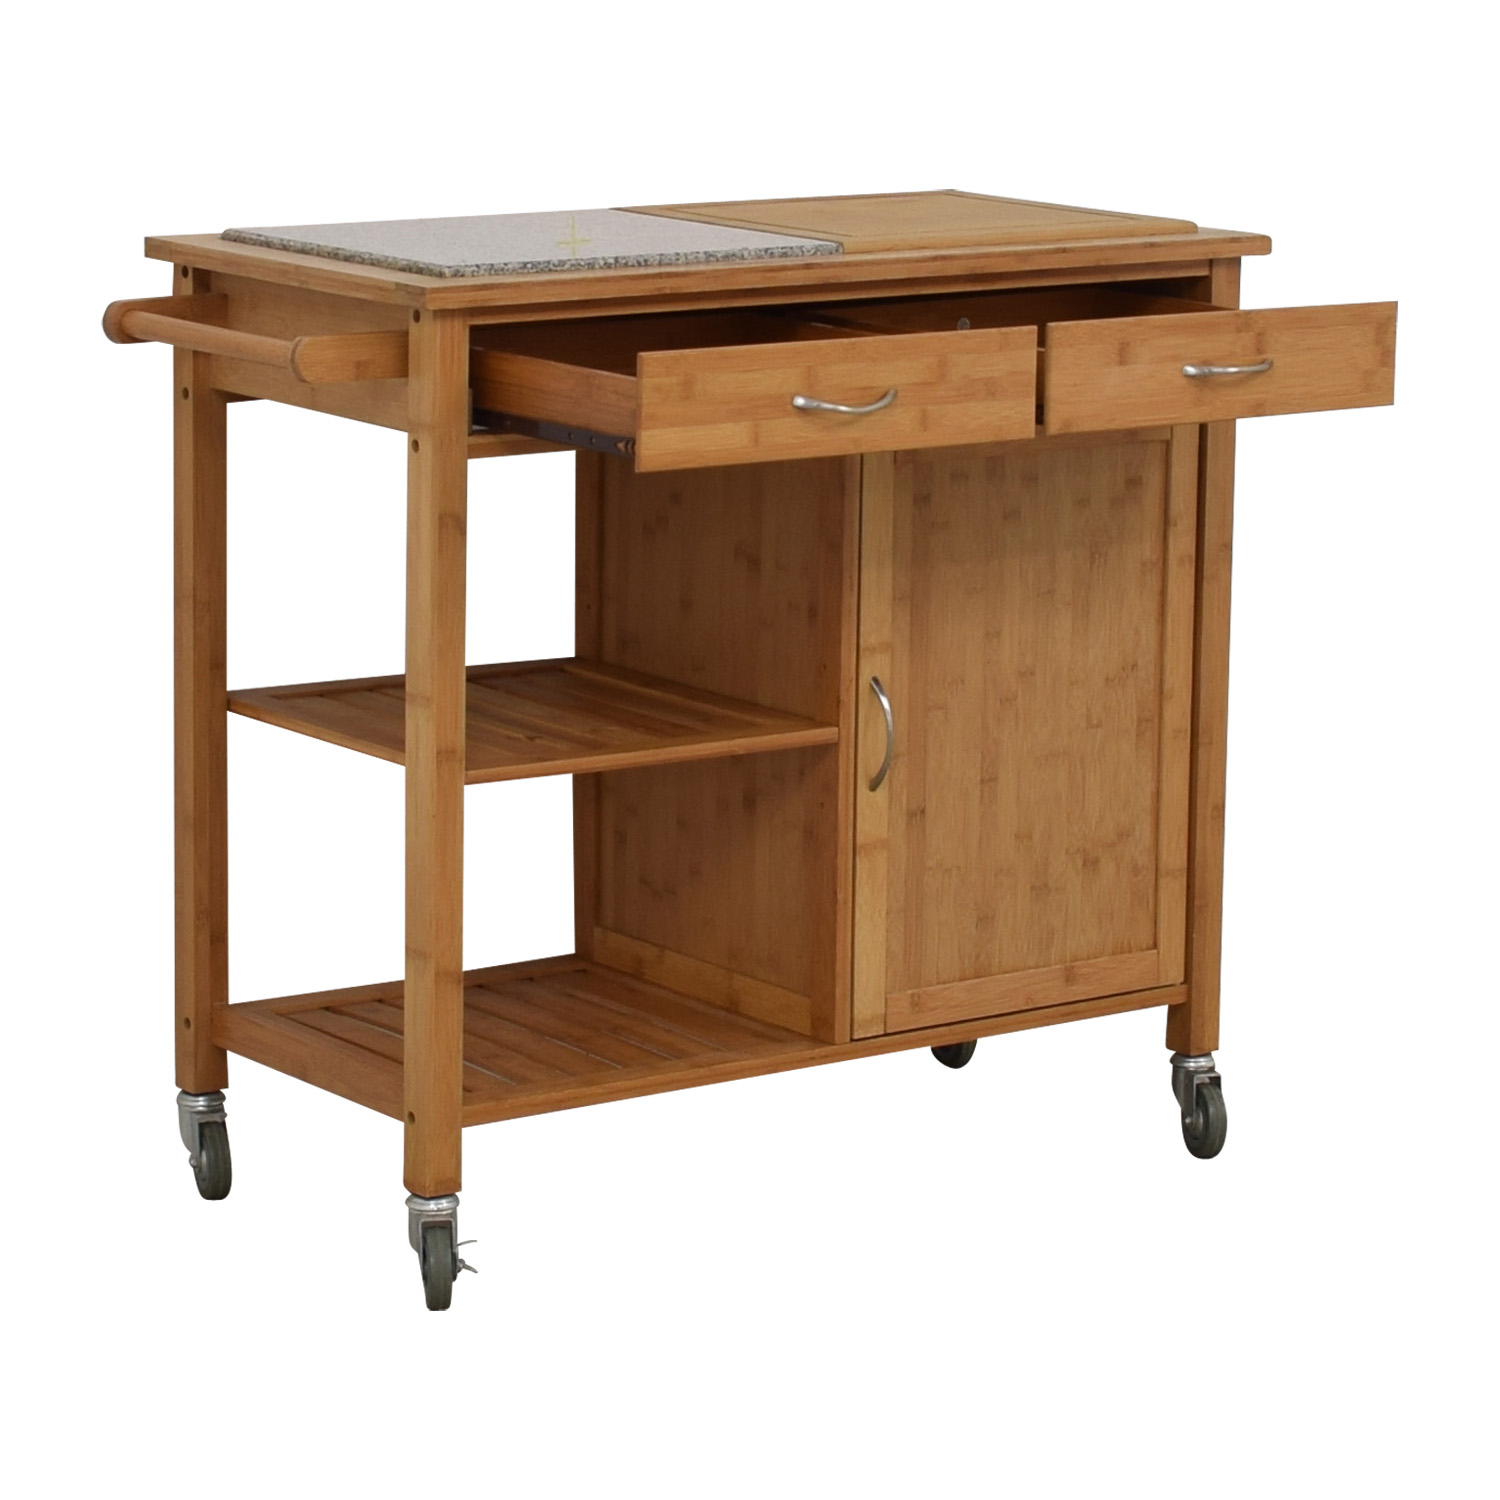 IKEA Natural Kitchen Island on Castors / Storage